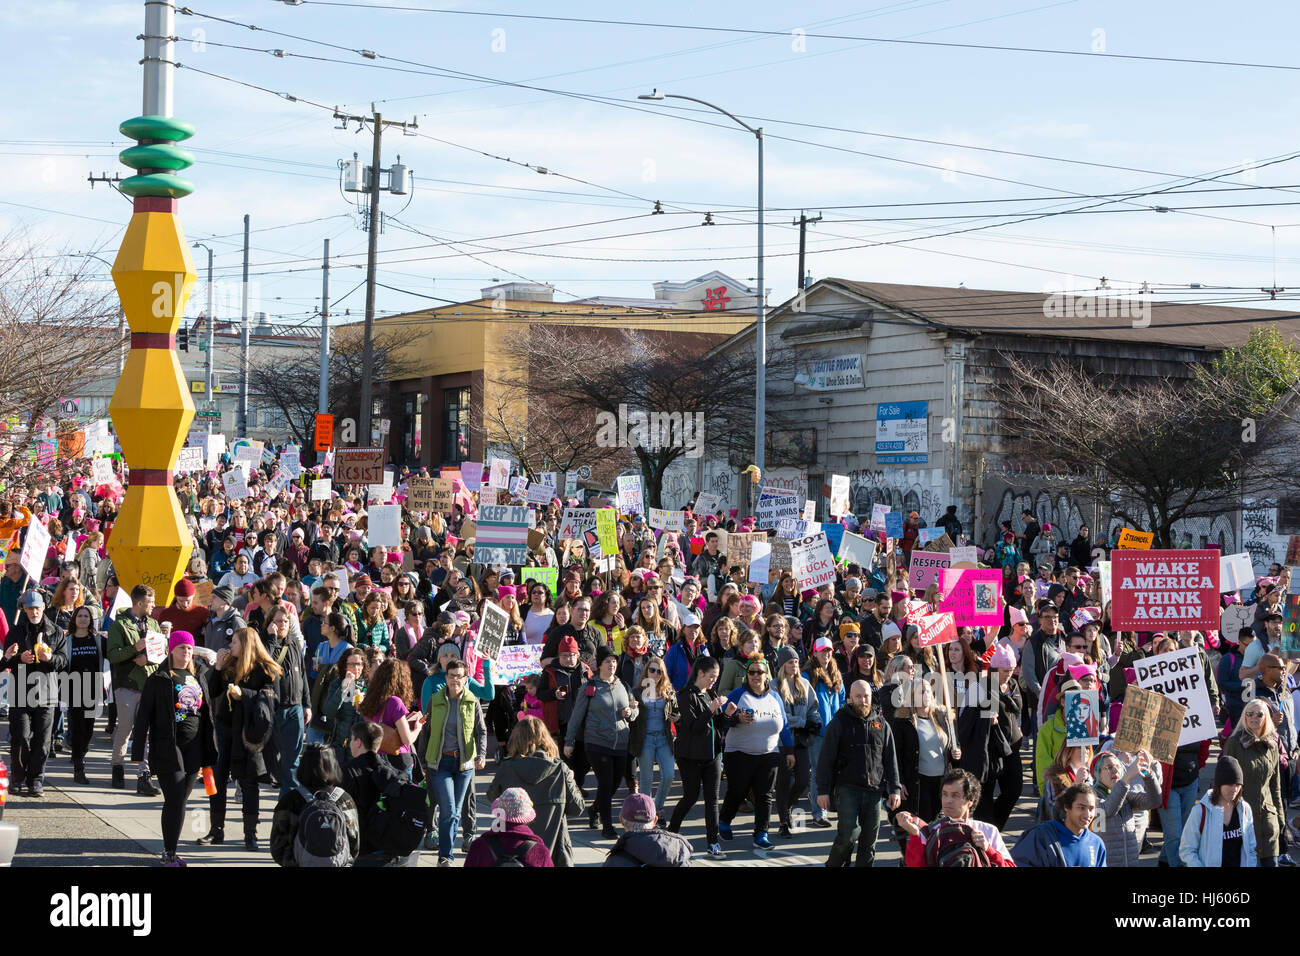 Seattle, United States. 21st Jan, 2017. Seattle, Washington: Supporters march through the International District. - Stock Image